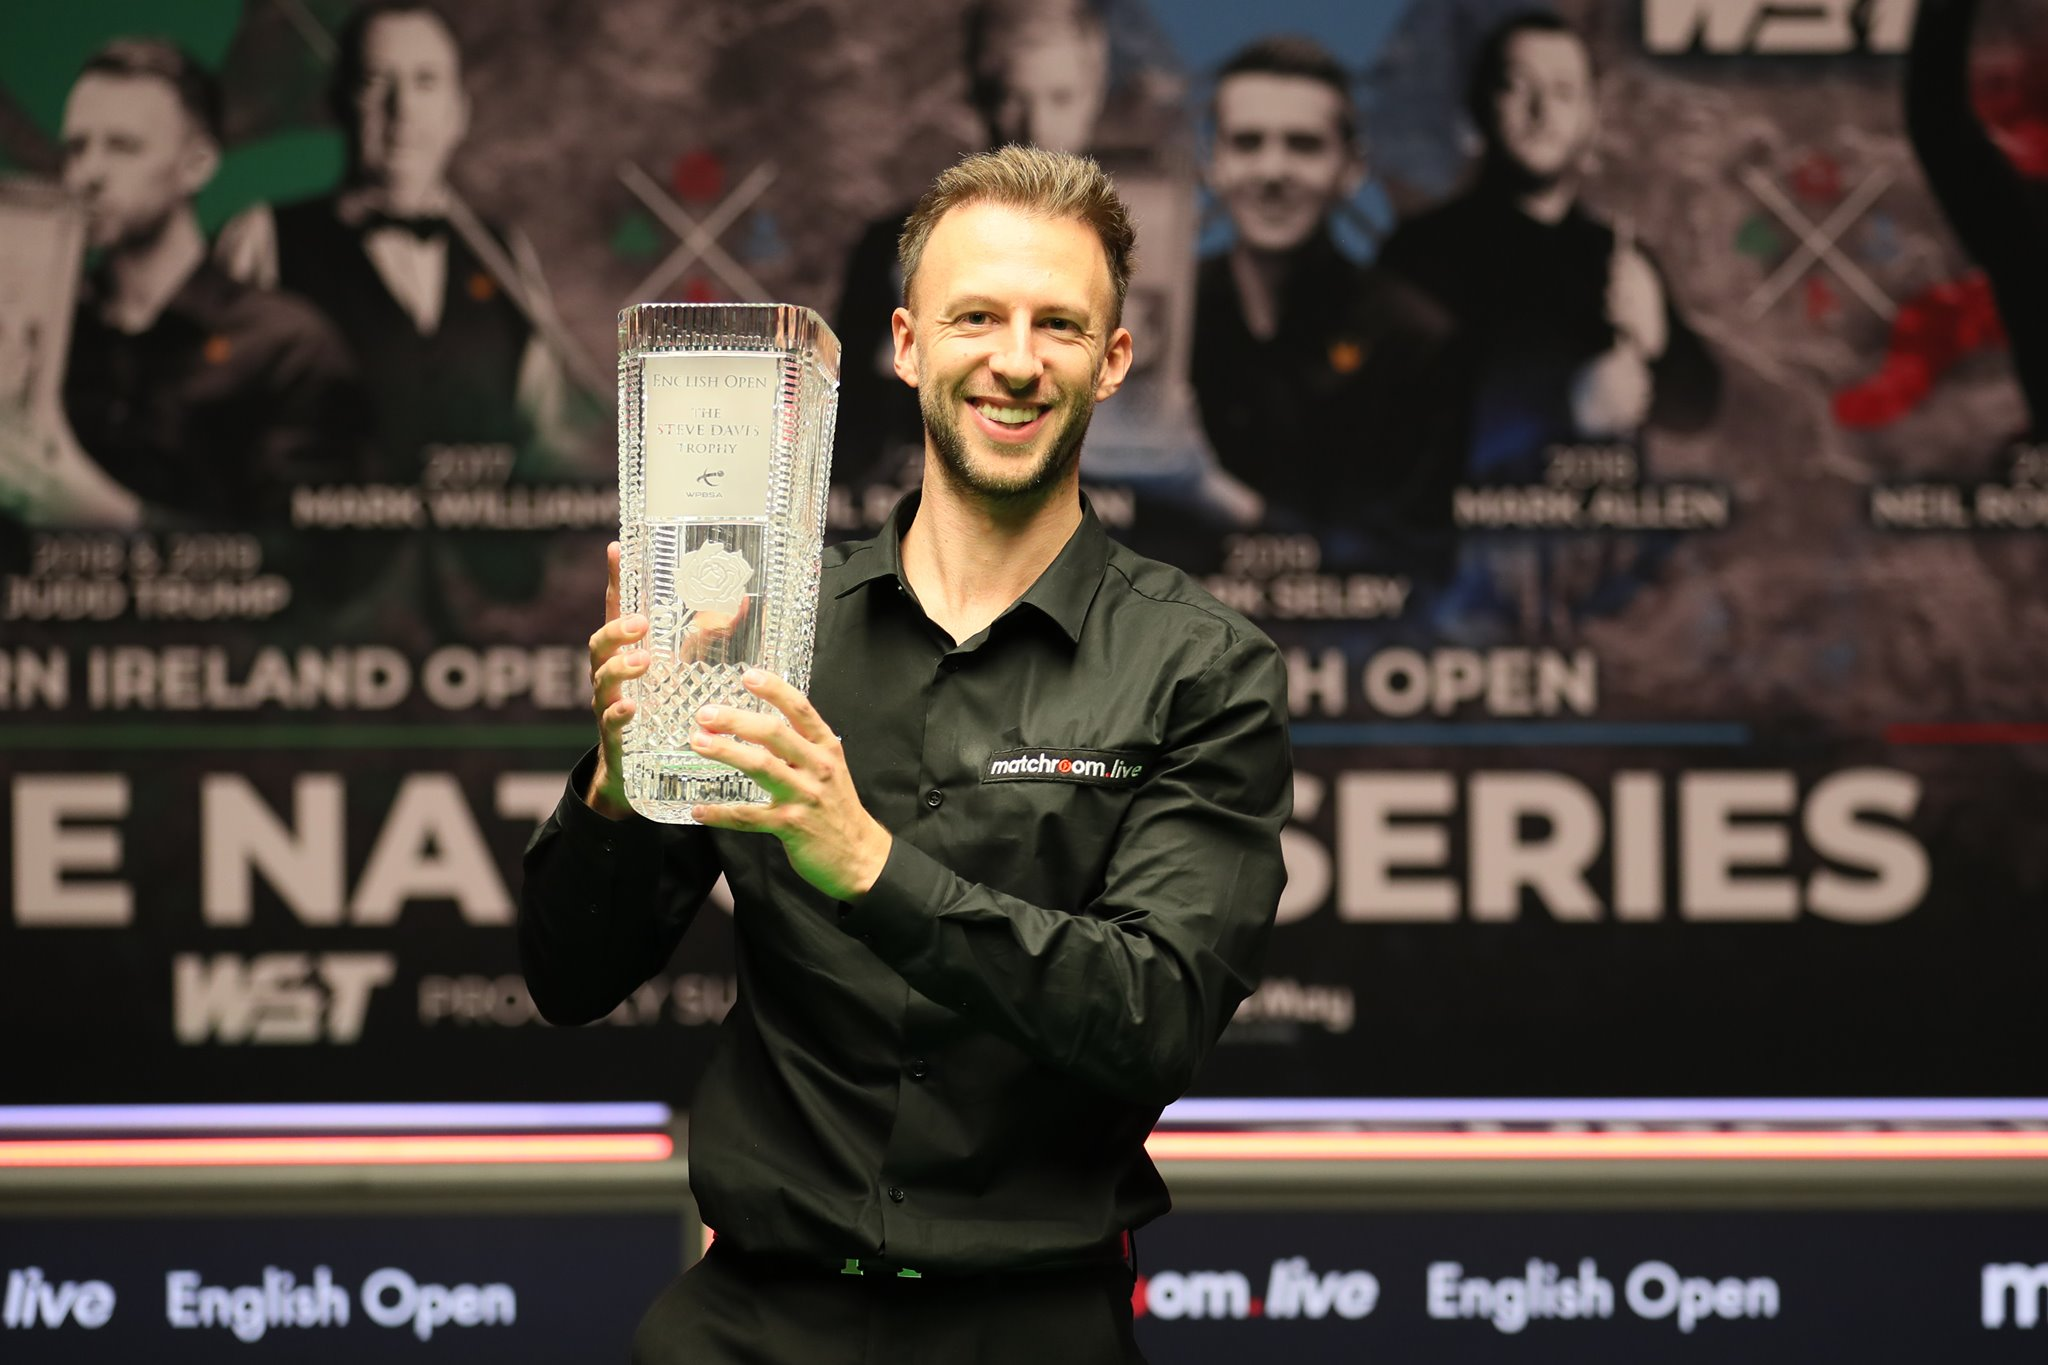 Judd Trump mit der Trophäe der English Open